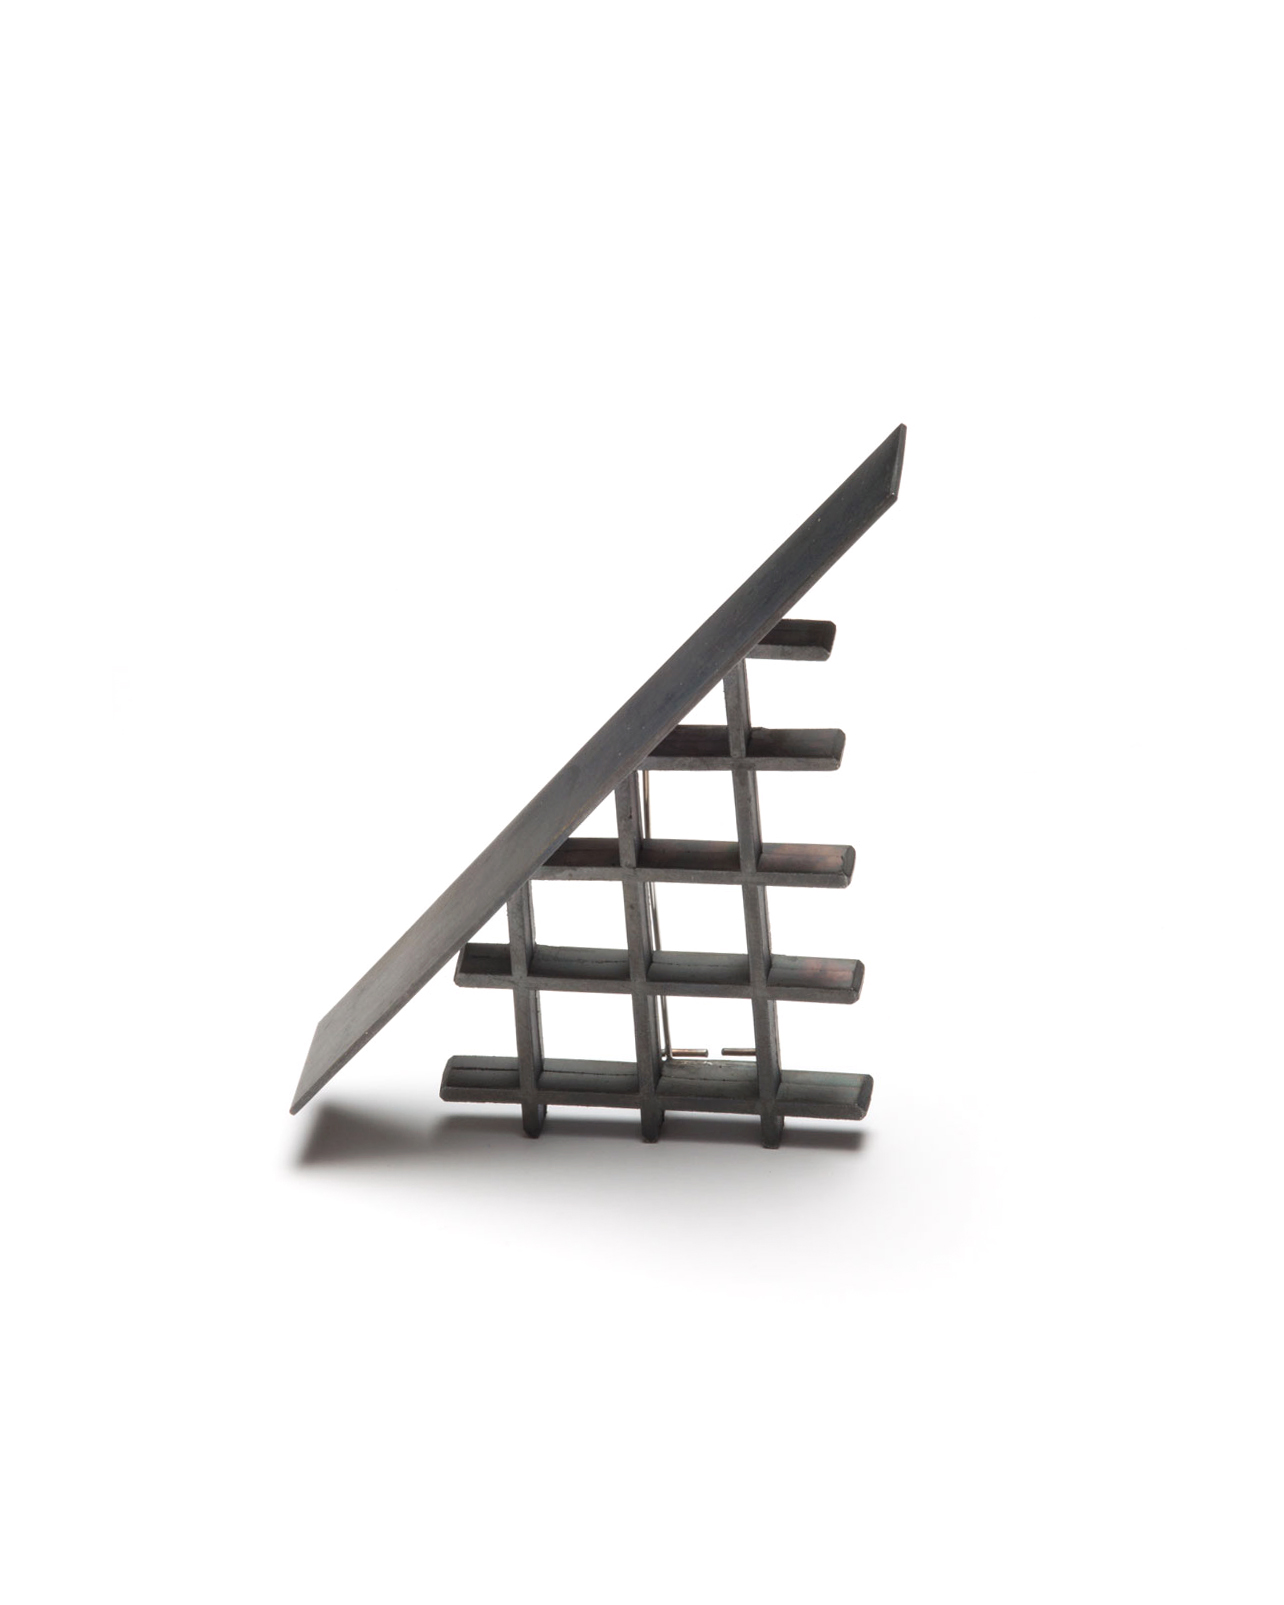 Winfried Krüger, untitled, 2003, brooch; oxidised silver, 100 x 50 mm, €875